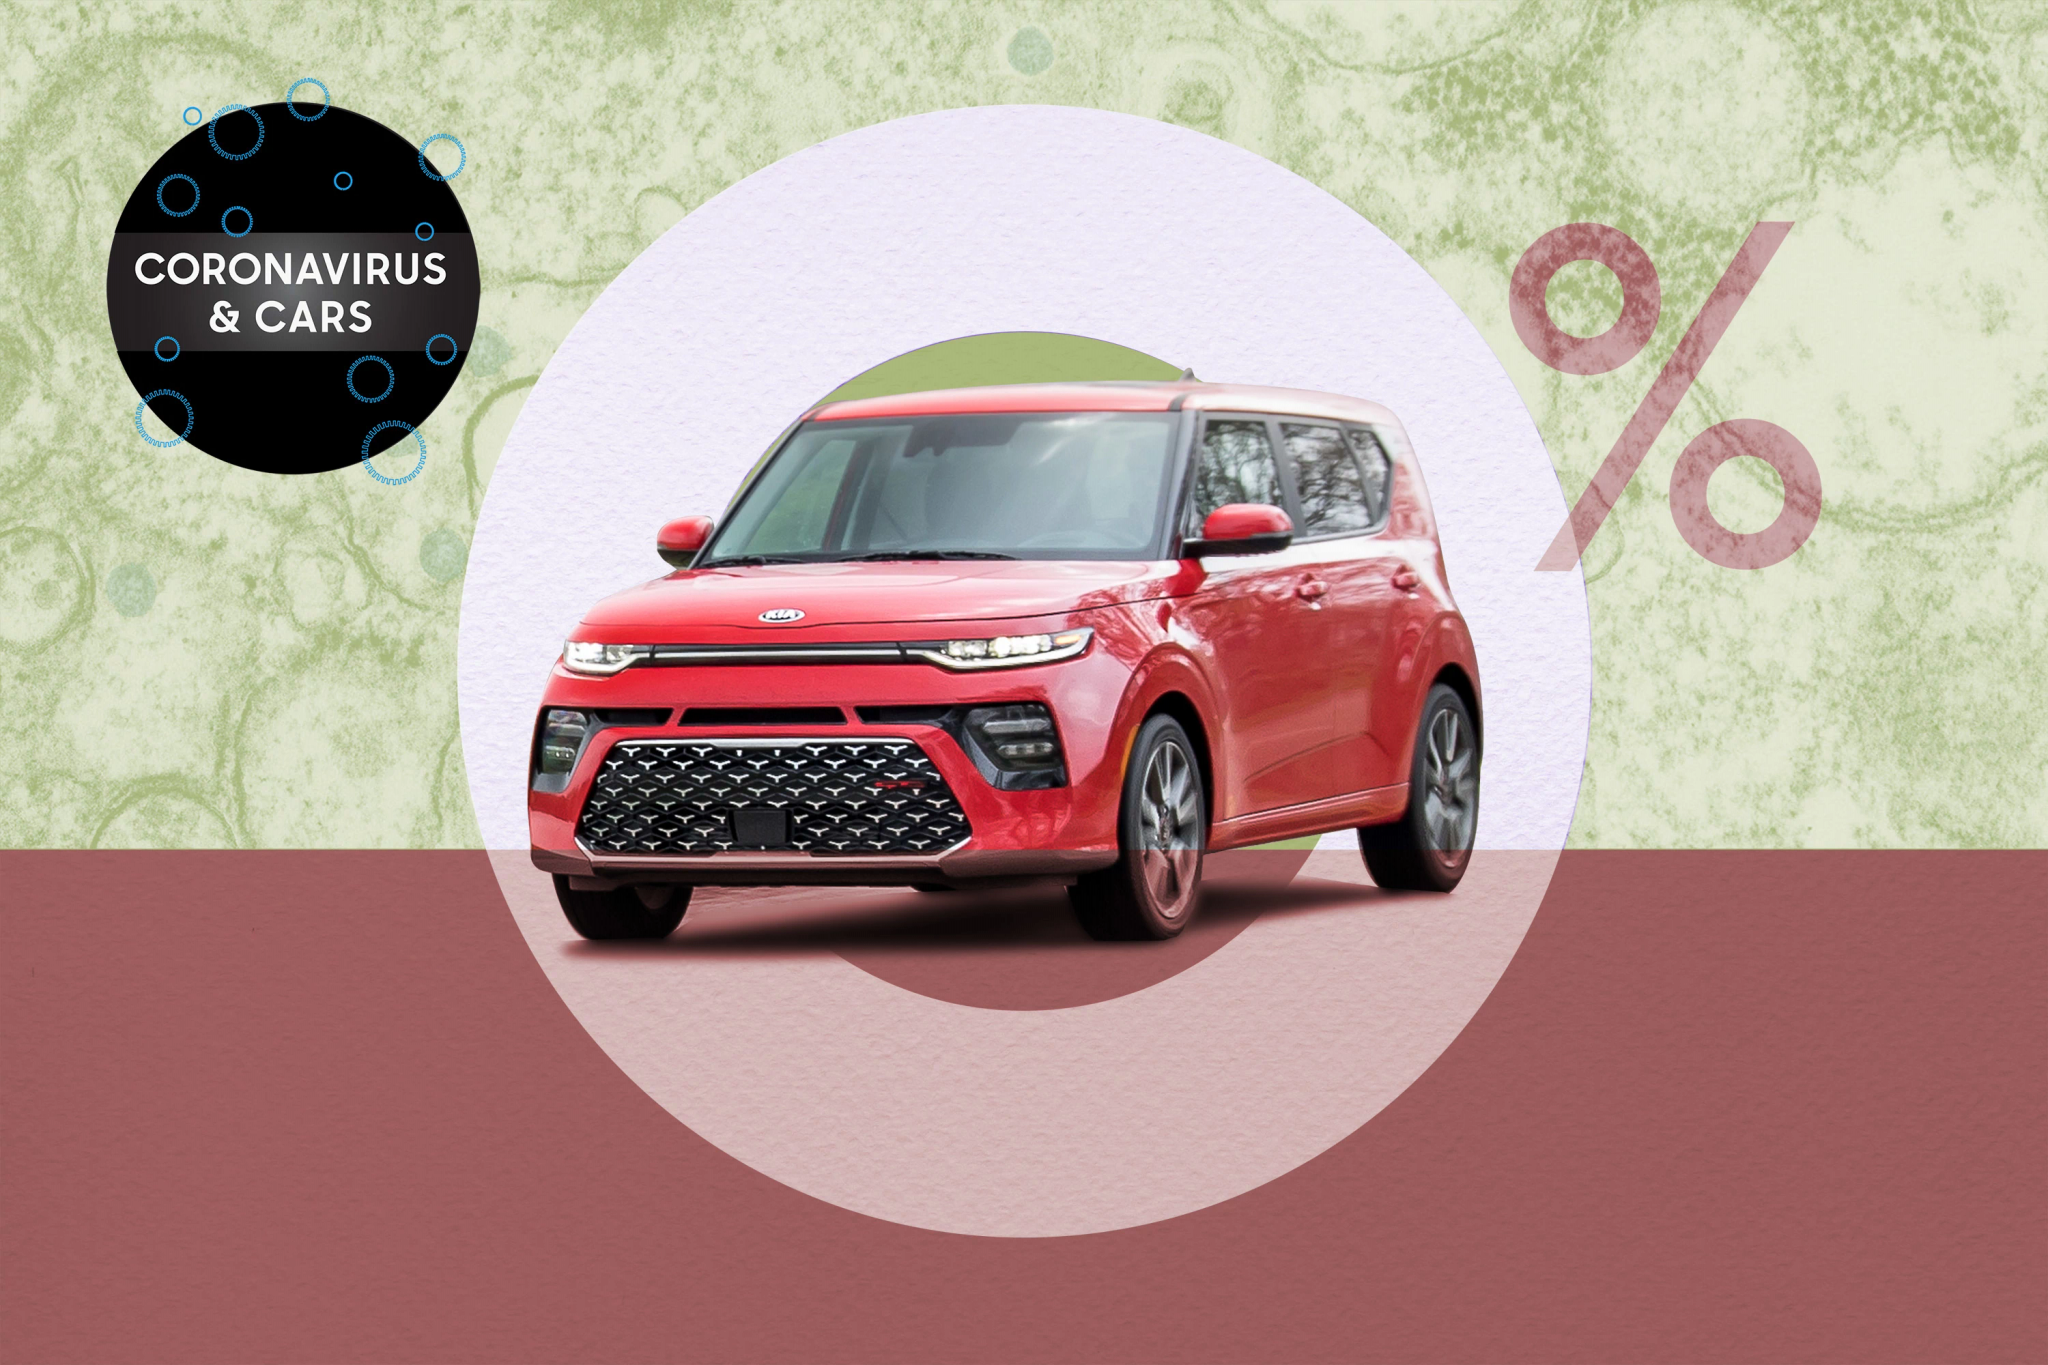 Coronavirus Car Deals: 5 Kia Models With 0% Financing and Why You Should Buy Them